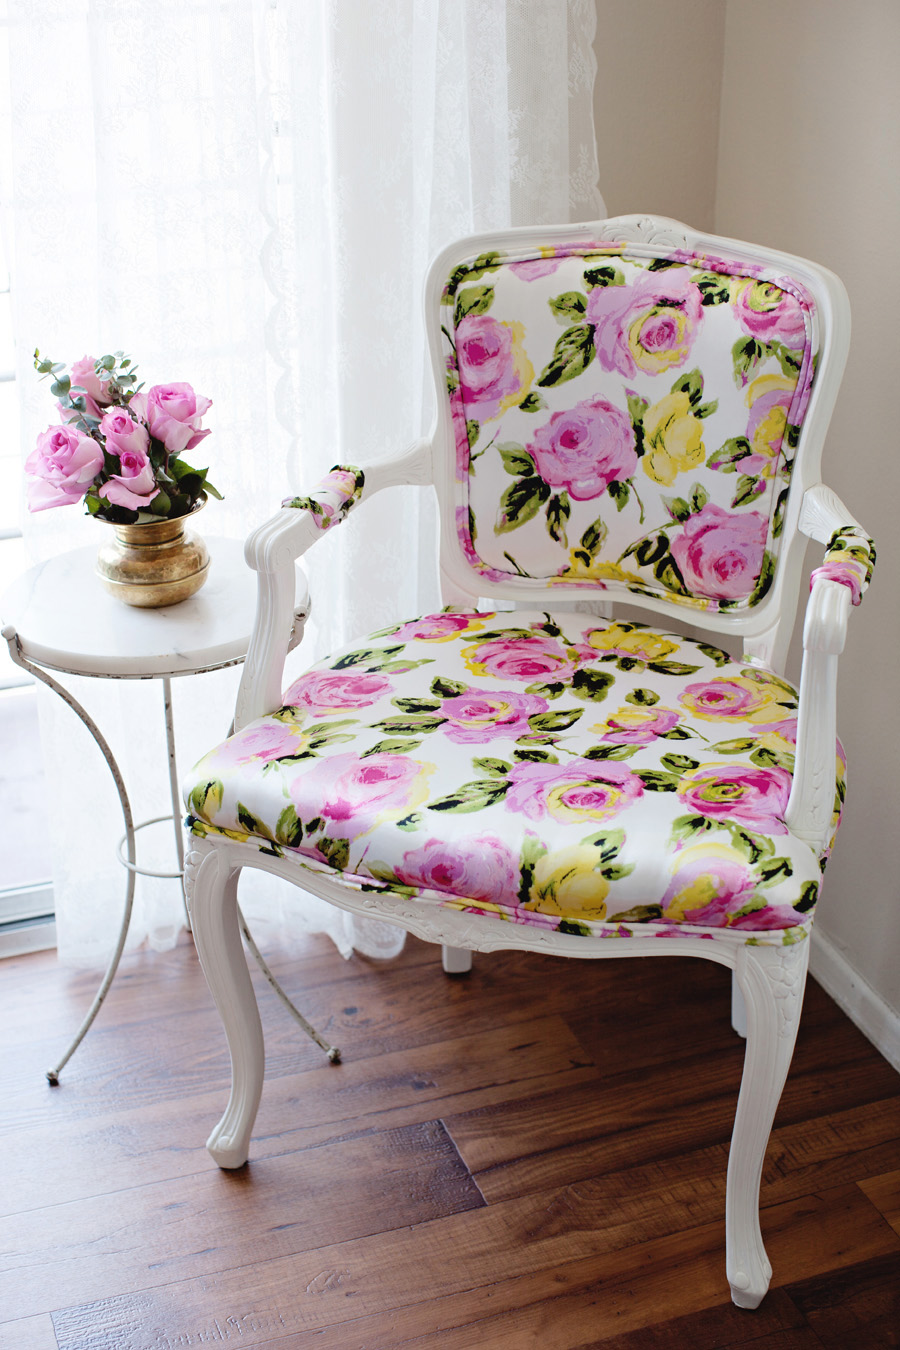 Diy Floral Chair Upholstery 2 Melodrama